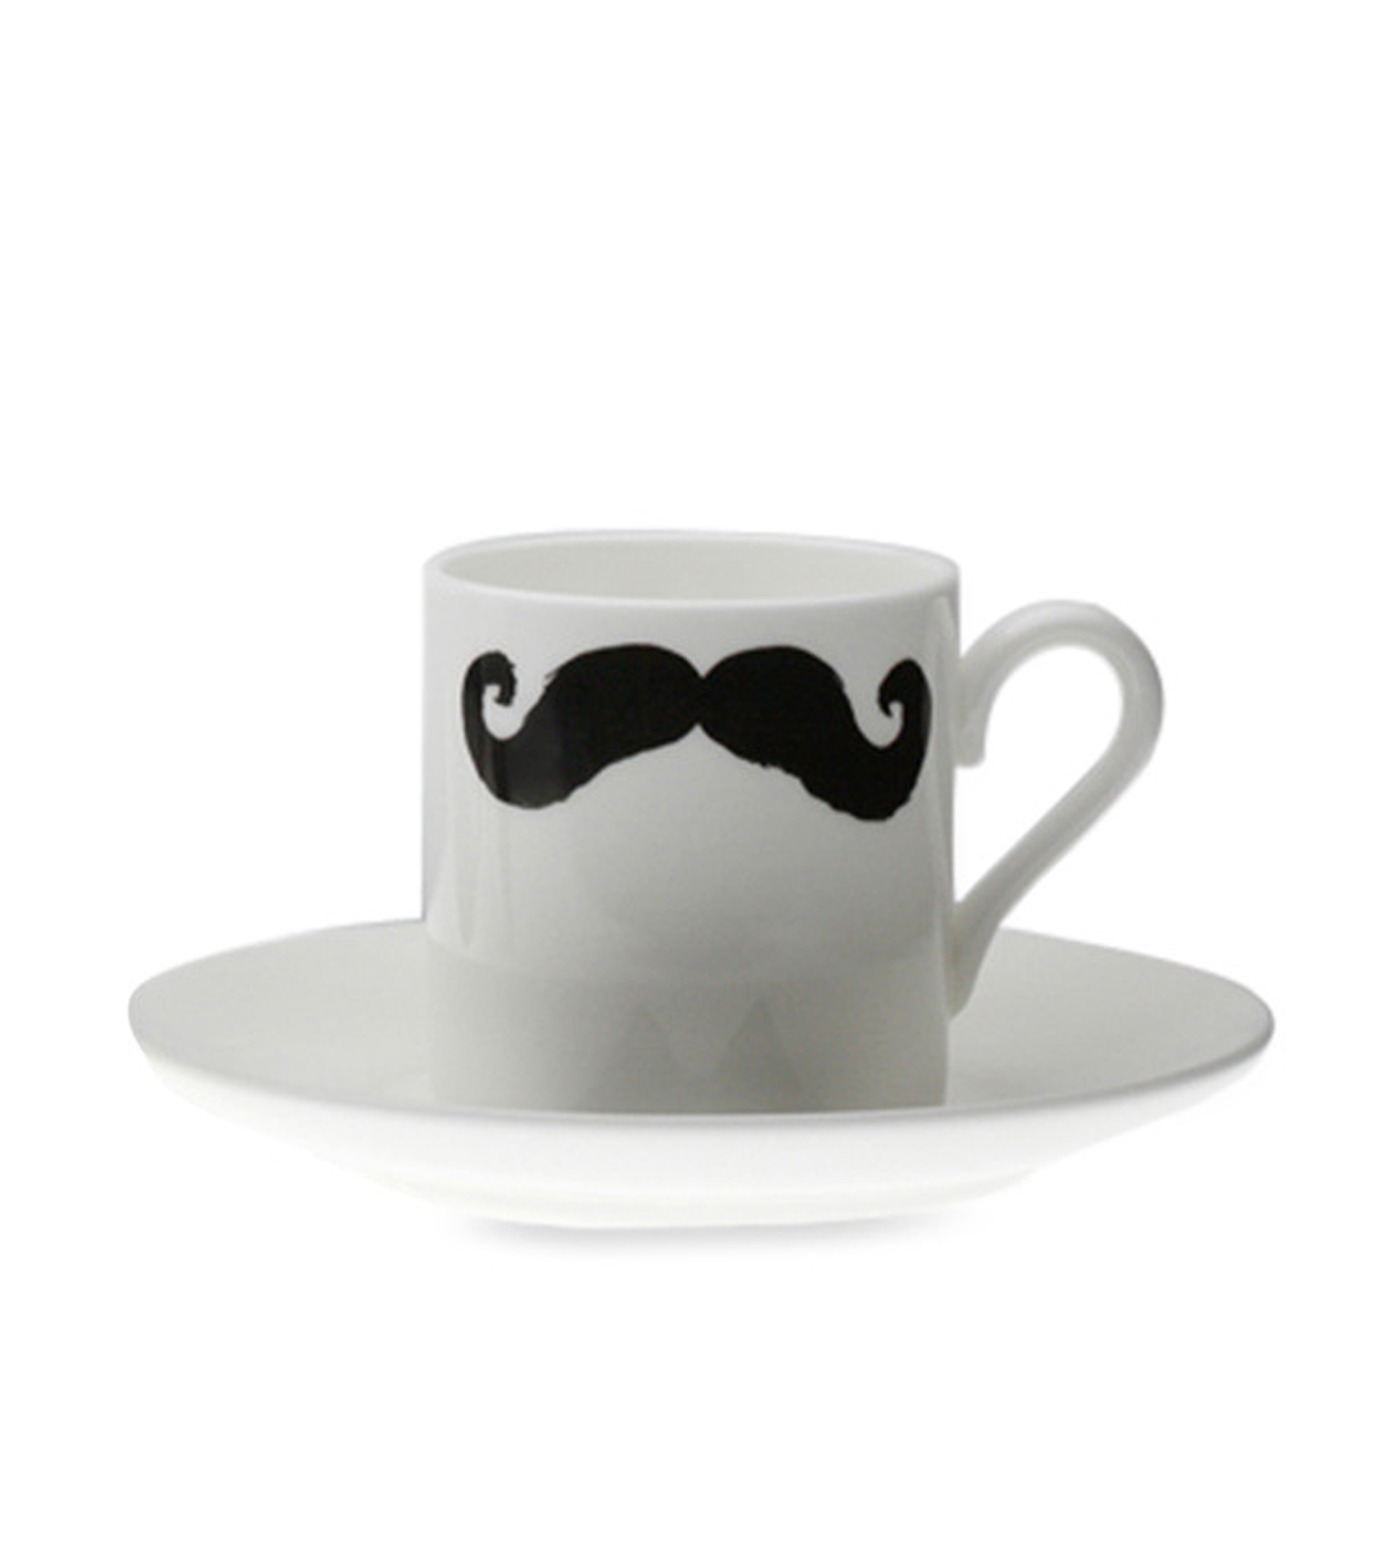 Peter Ibruegger(ピーター イーブルガ)のEspresso Cup & Saucer Maurice Poirot-WHITE(キッチン/kitchen)-O05-W-4 拡大詳細画像2